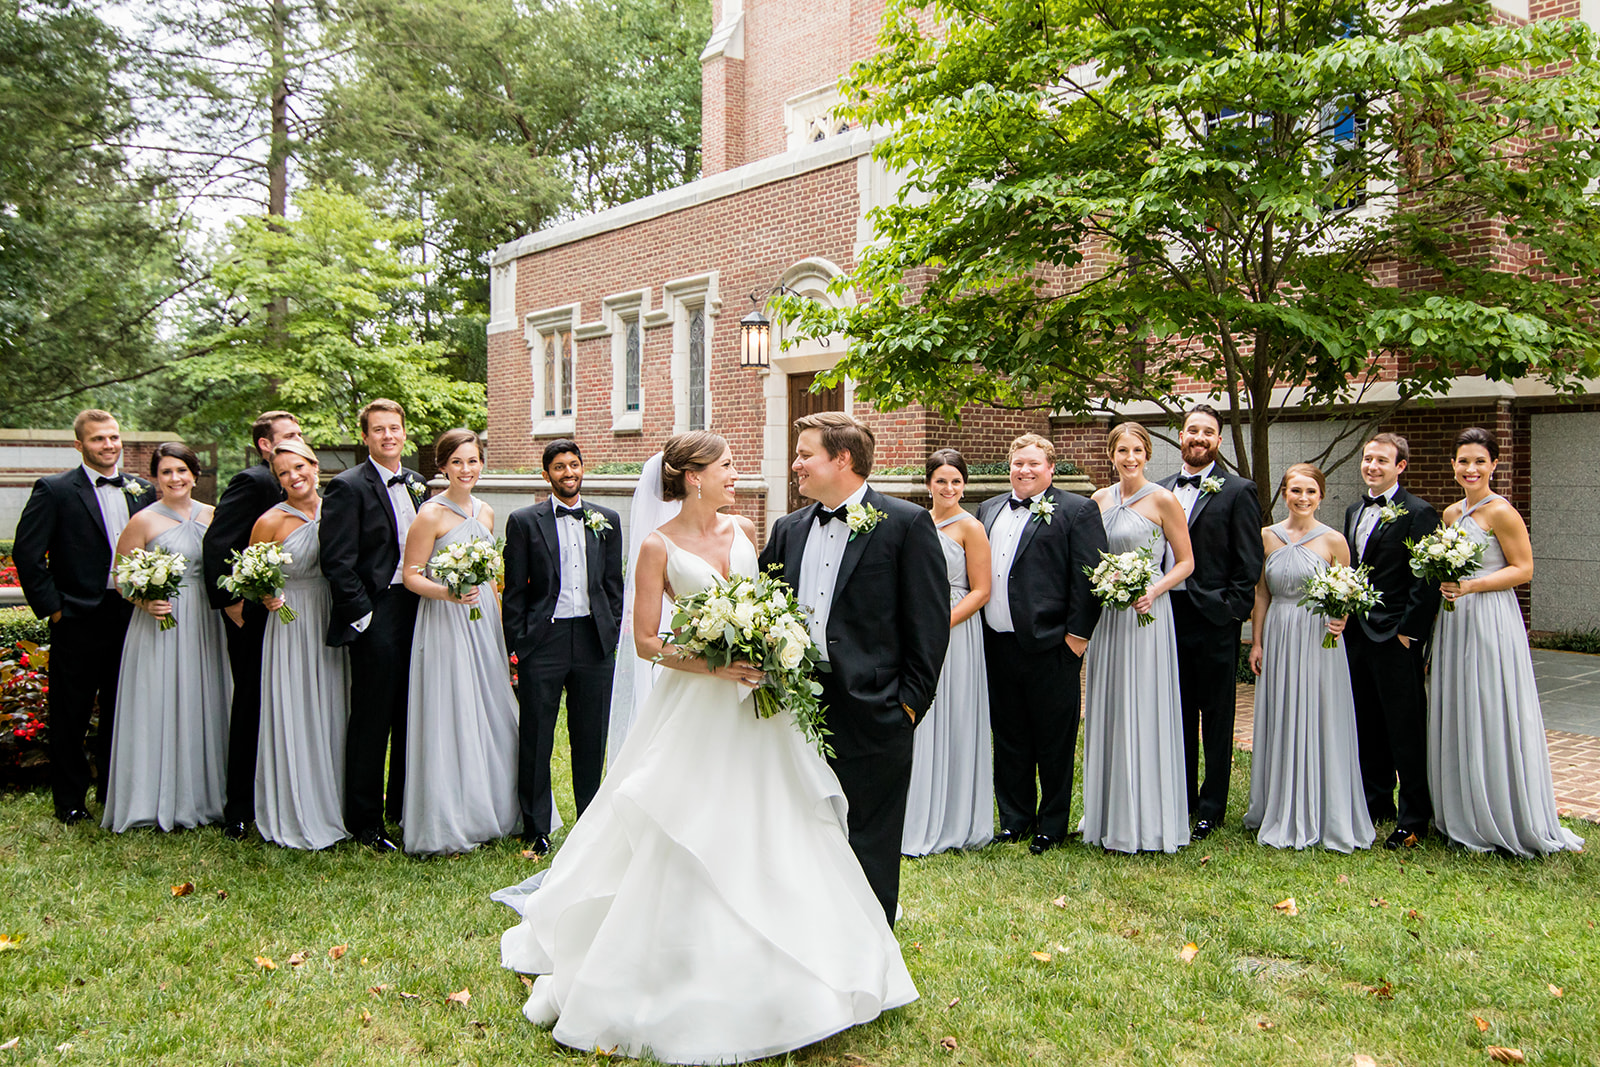 Susan  Sams University of Richmond Wedding - Image Property of www.j-dphoto.com